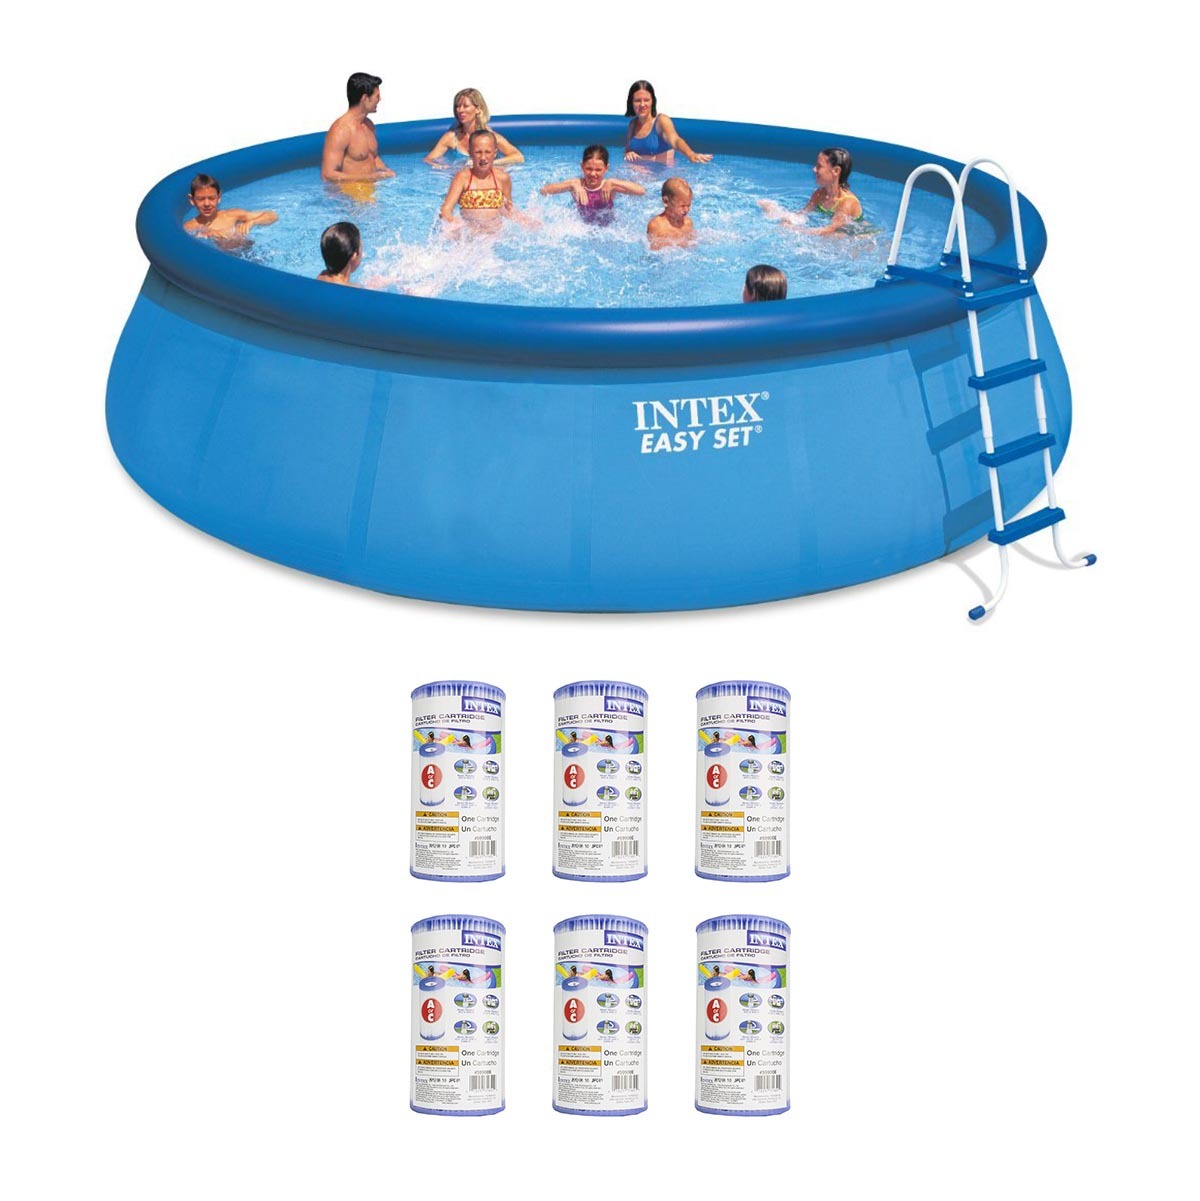 Intex X Inflatable Easy Set Above Ground Pool Set Filter